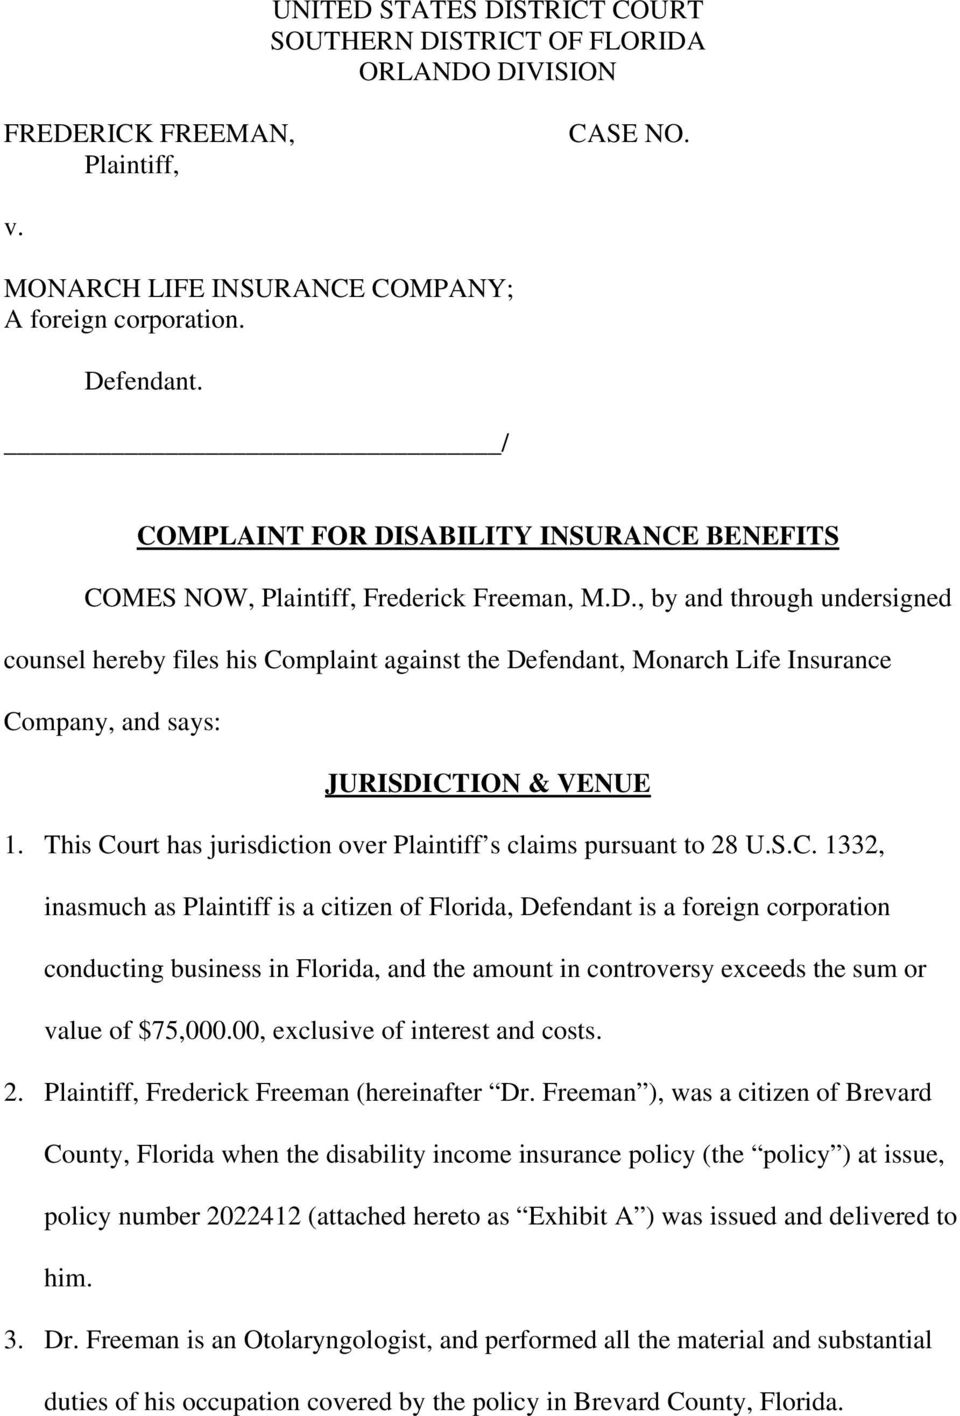 This Court has jurisdiction over Plaintiff s claims pursuant to 28 U.S.C. 1332, inasmuch as Plaintiff is a citizen of Florida, Defendant is a foreign corporation conducting business in Florida, and the amount in controversy exceeds the sum or value of $75,000.